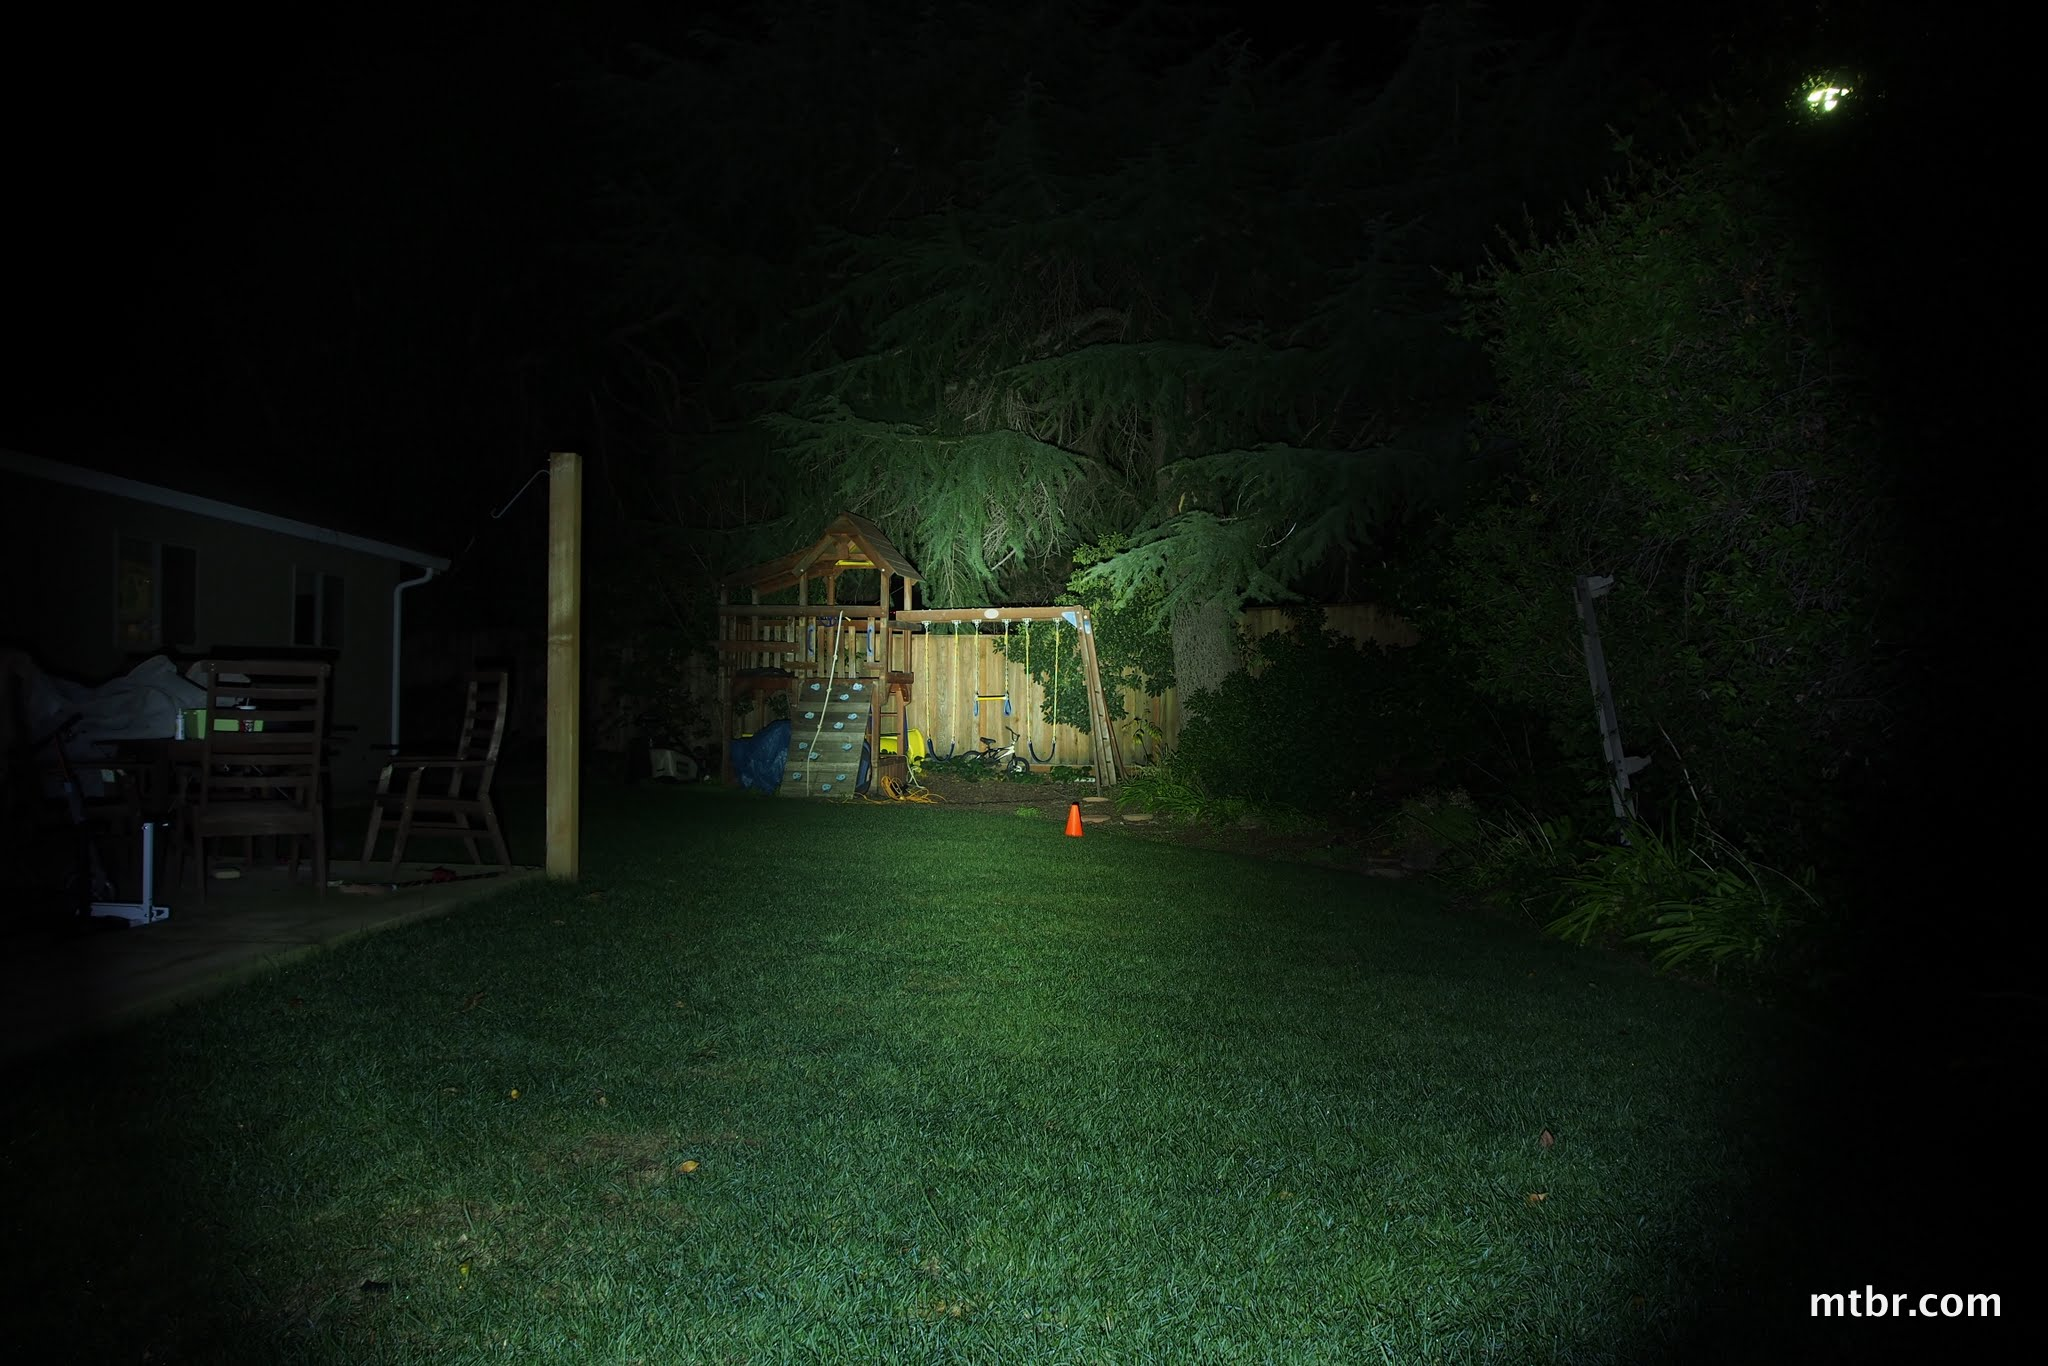 Jet Lites F-U2 Backyard Beam Pattern